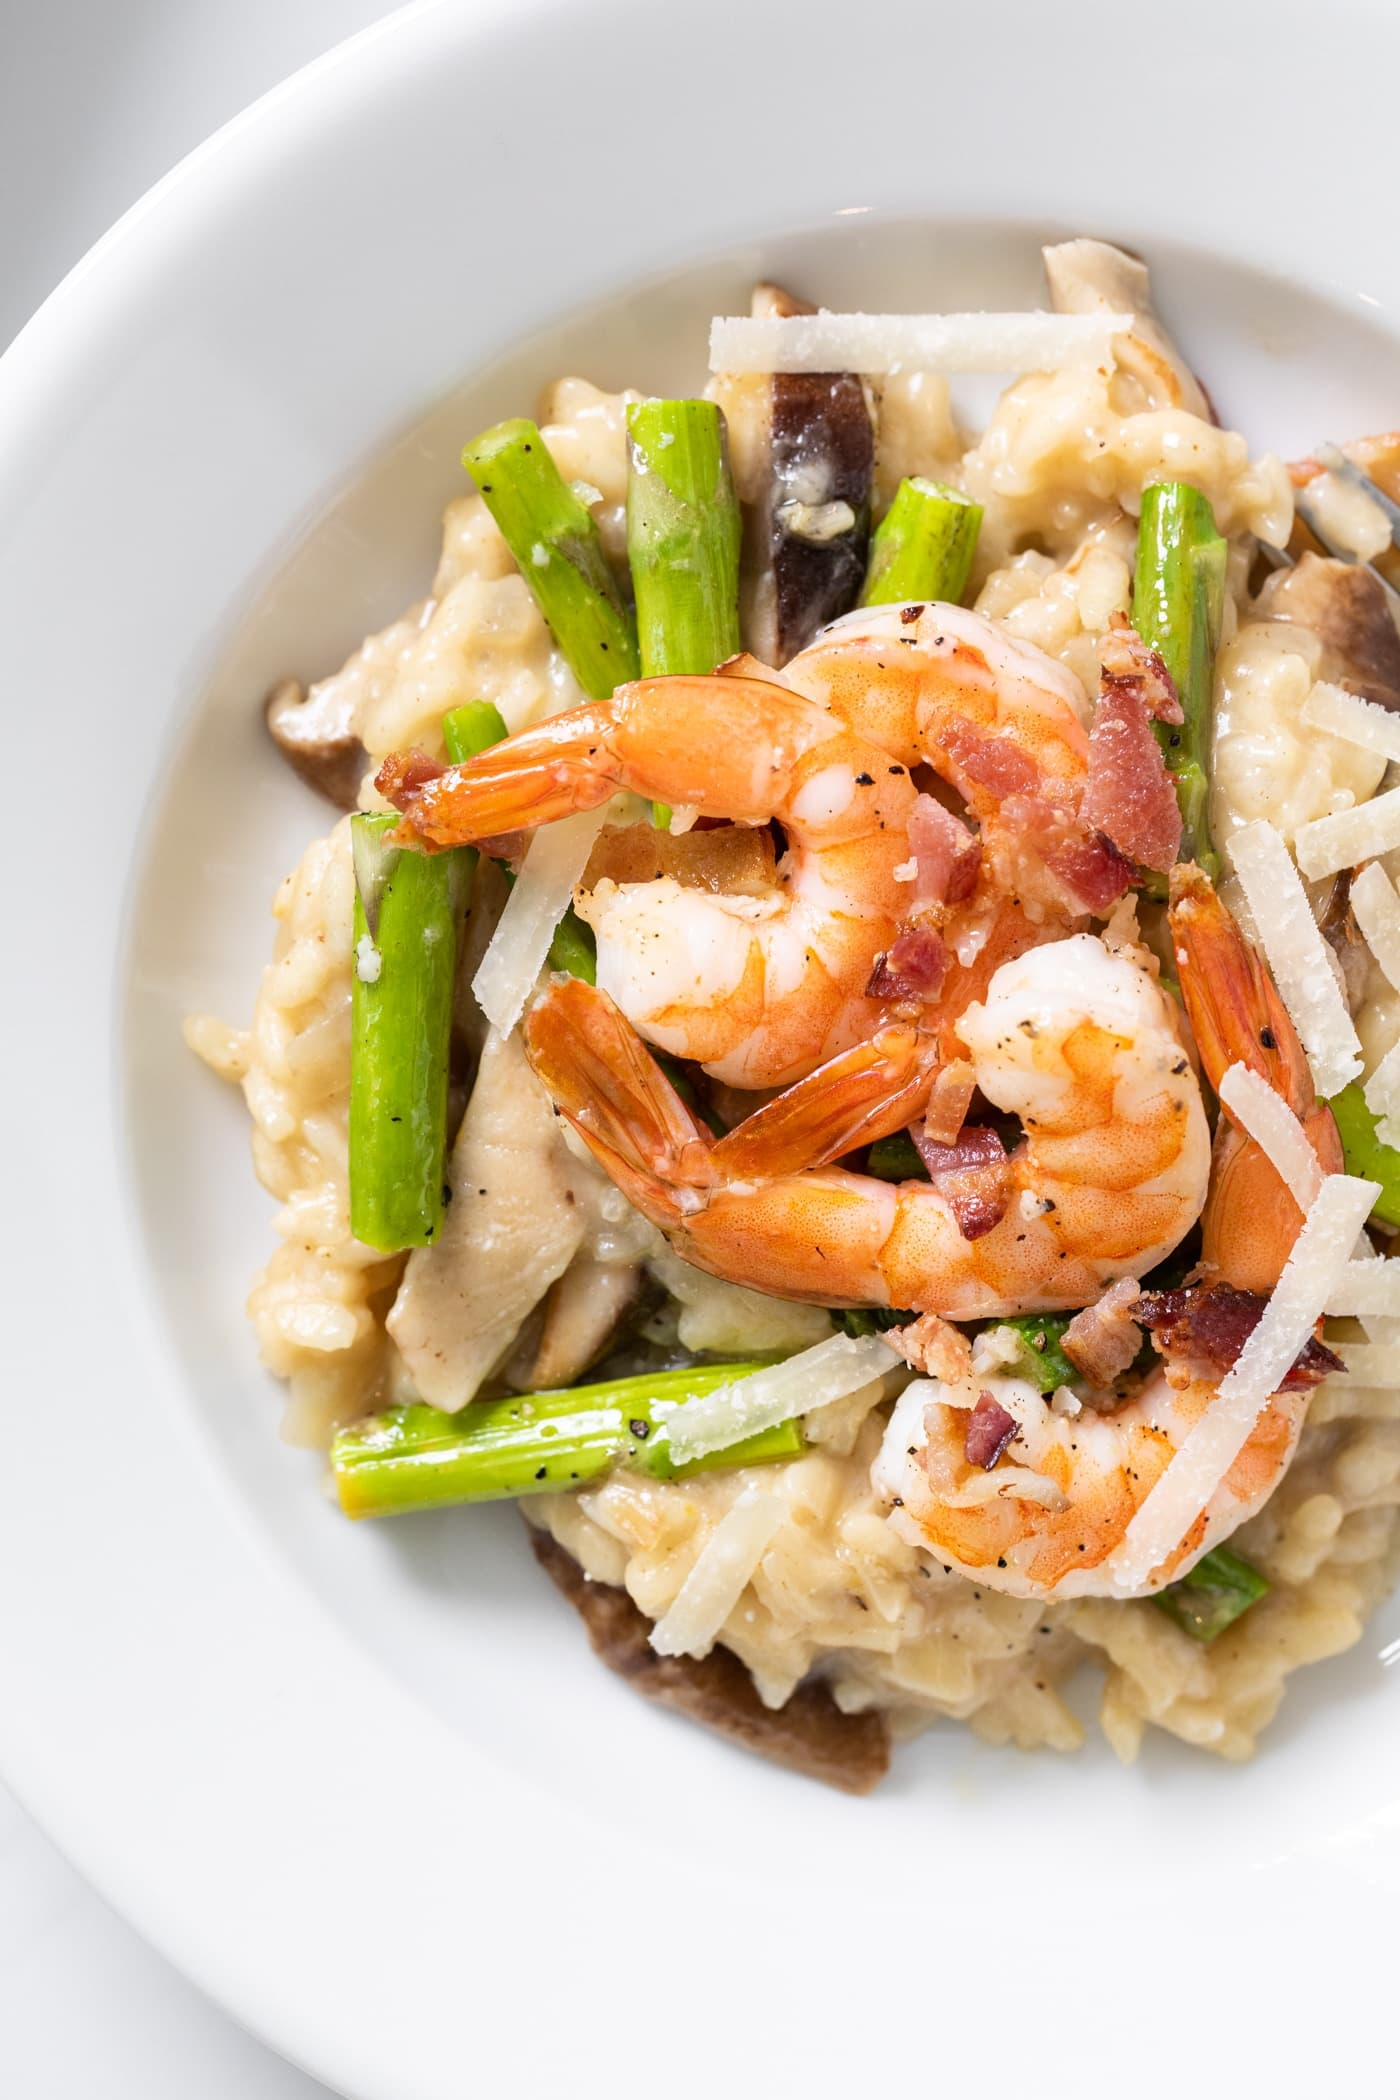 Top down close up view of risotto sitting on white plate topped with asparagus and pink colored shrimp pieces